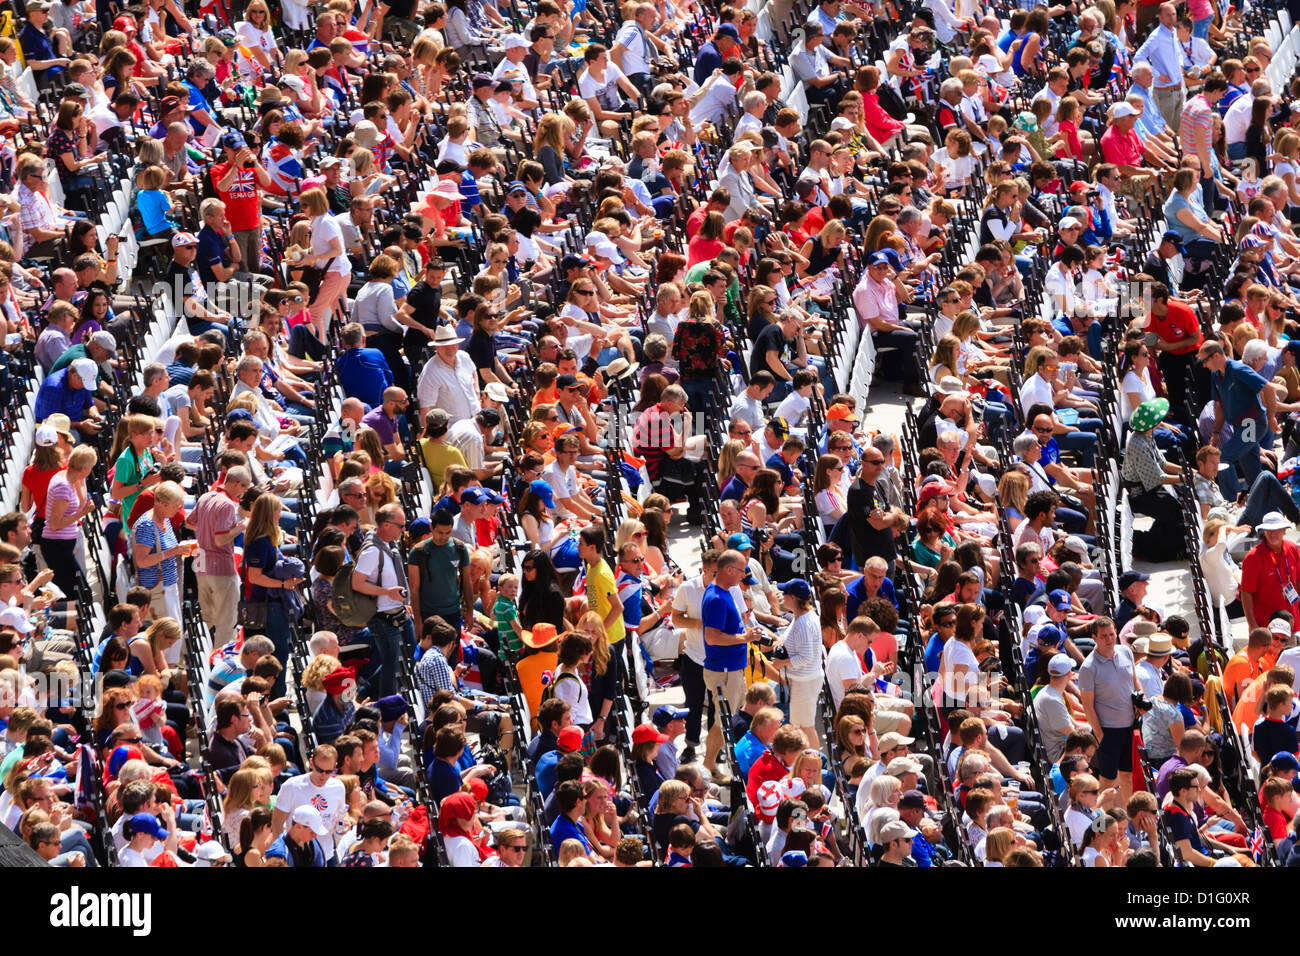 Large crowd of spectators in a sports arena, London, England, United Kingdom, Europe - Stock Image